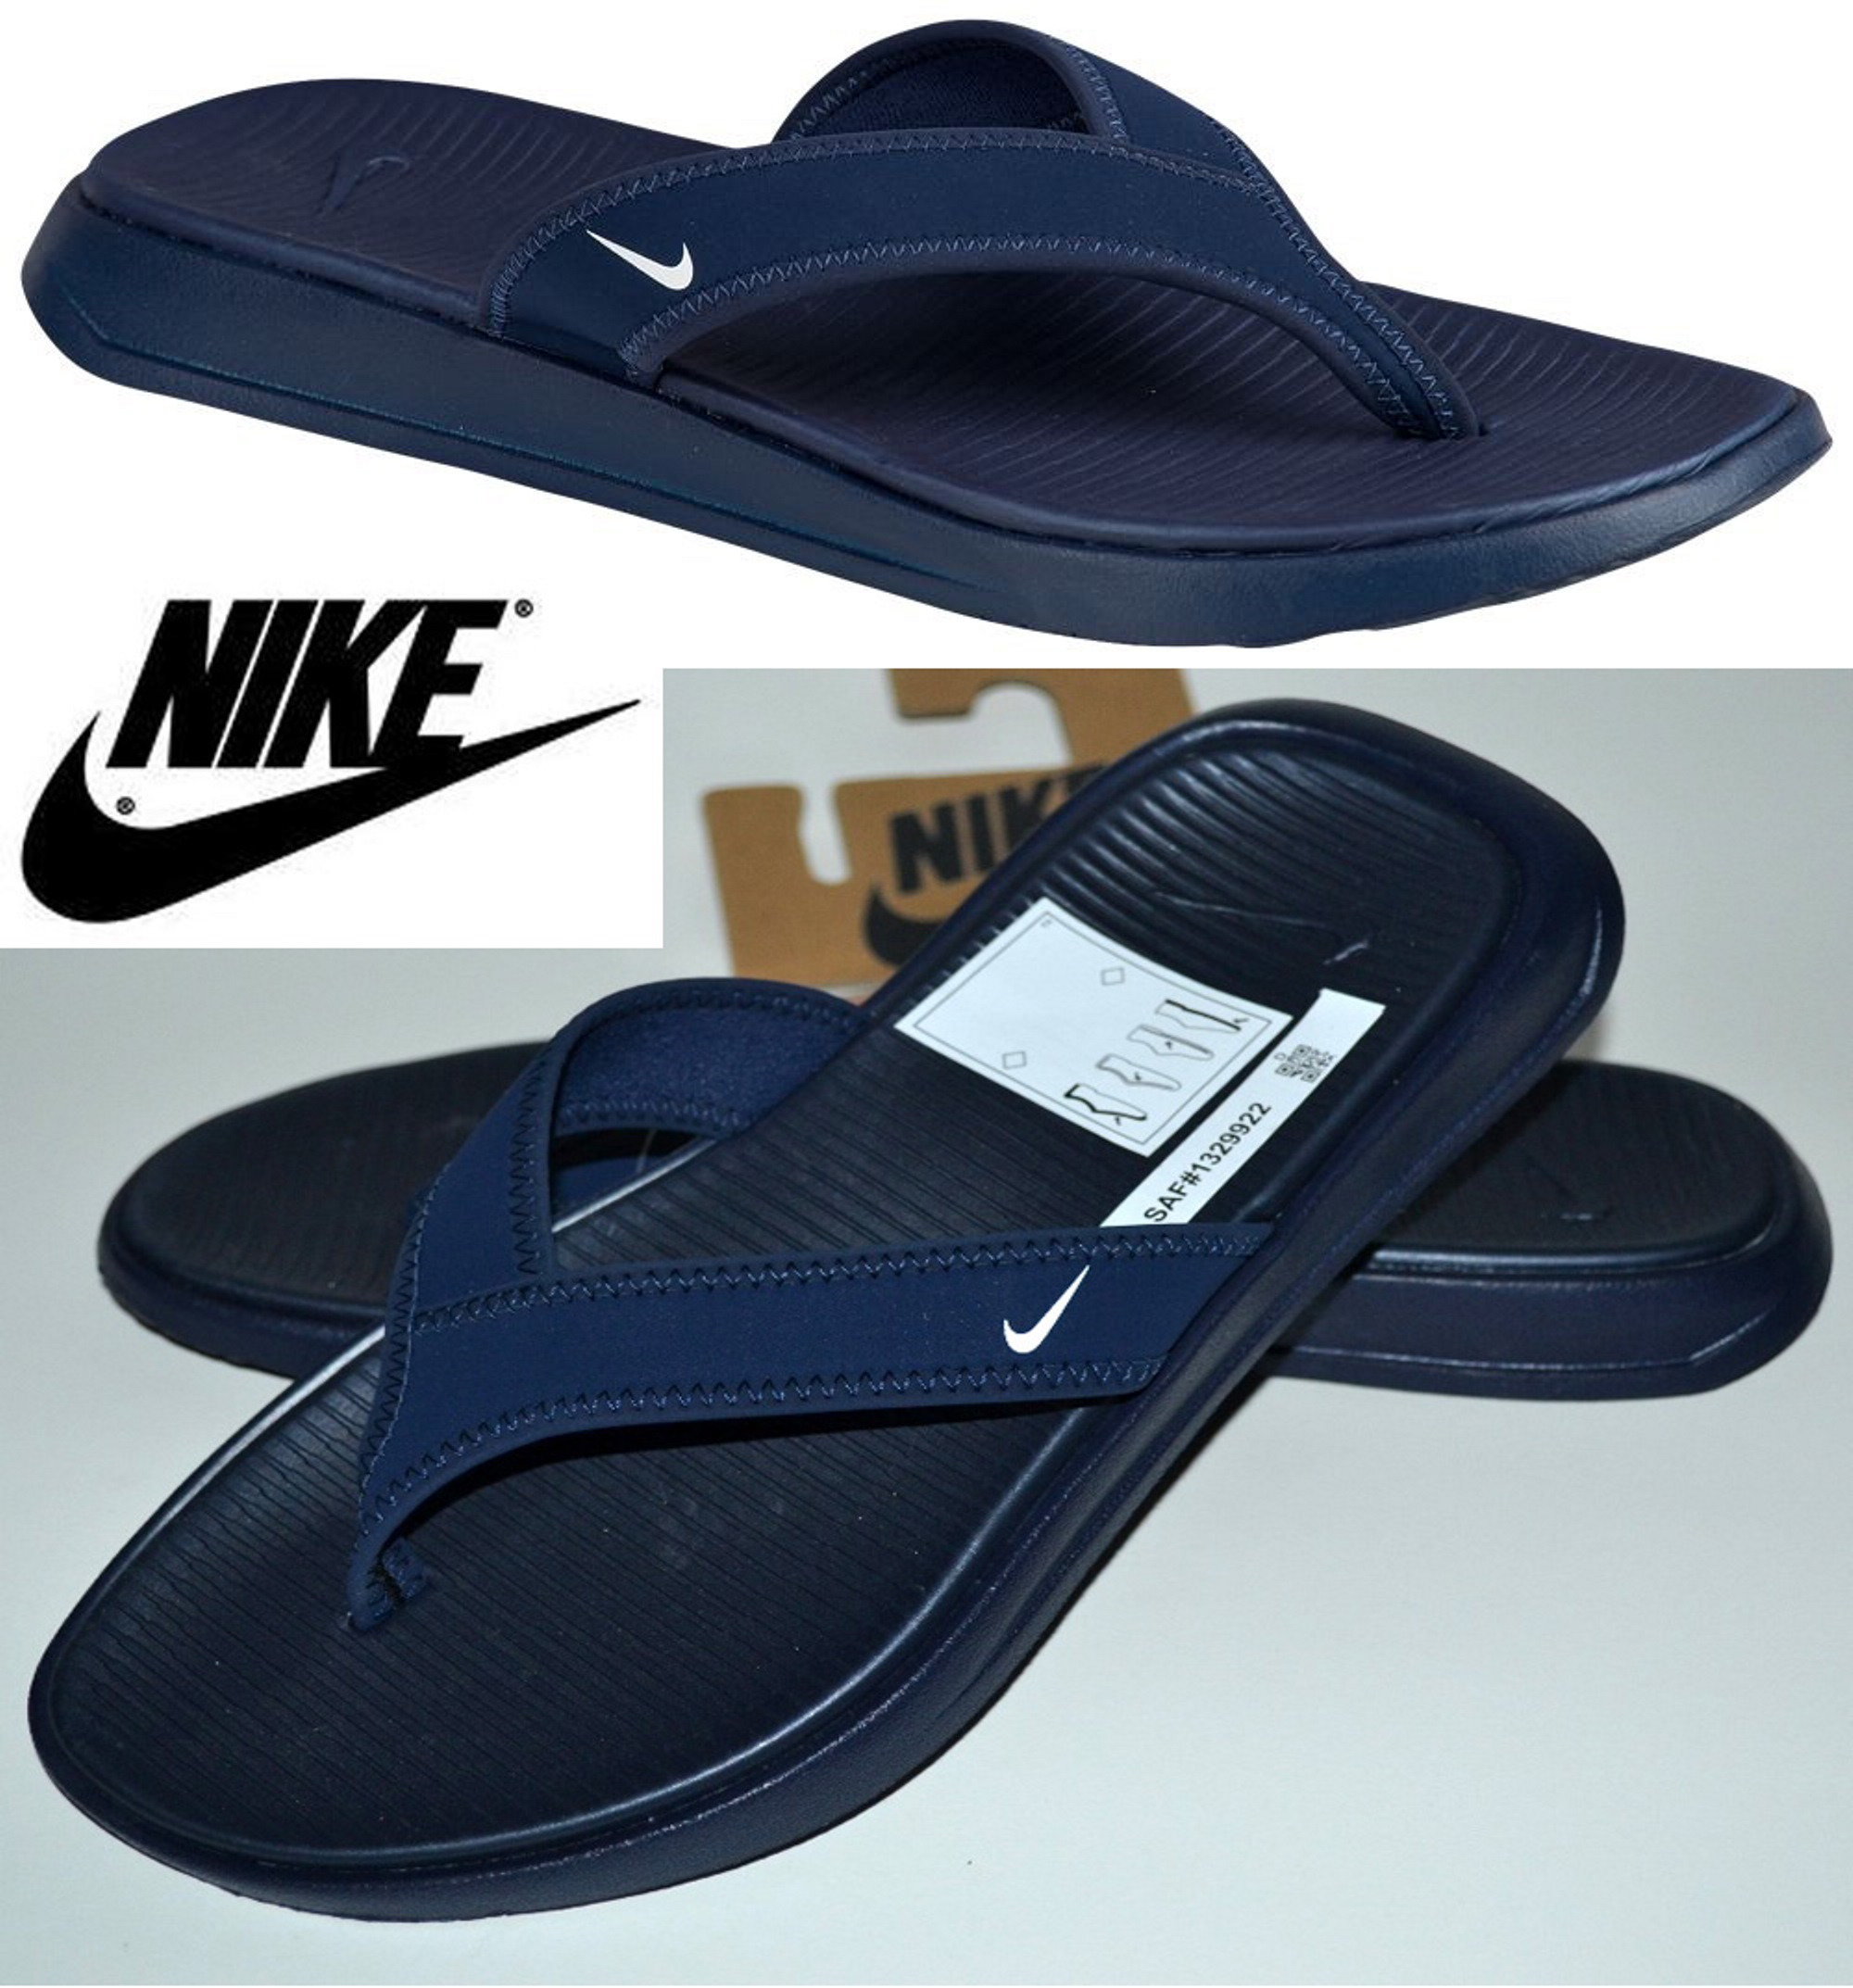 Žabky zn. NIKE ULTRA CELSO THONG vel. 40